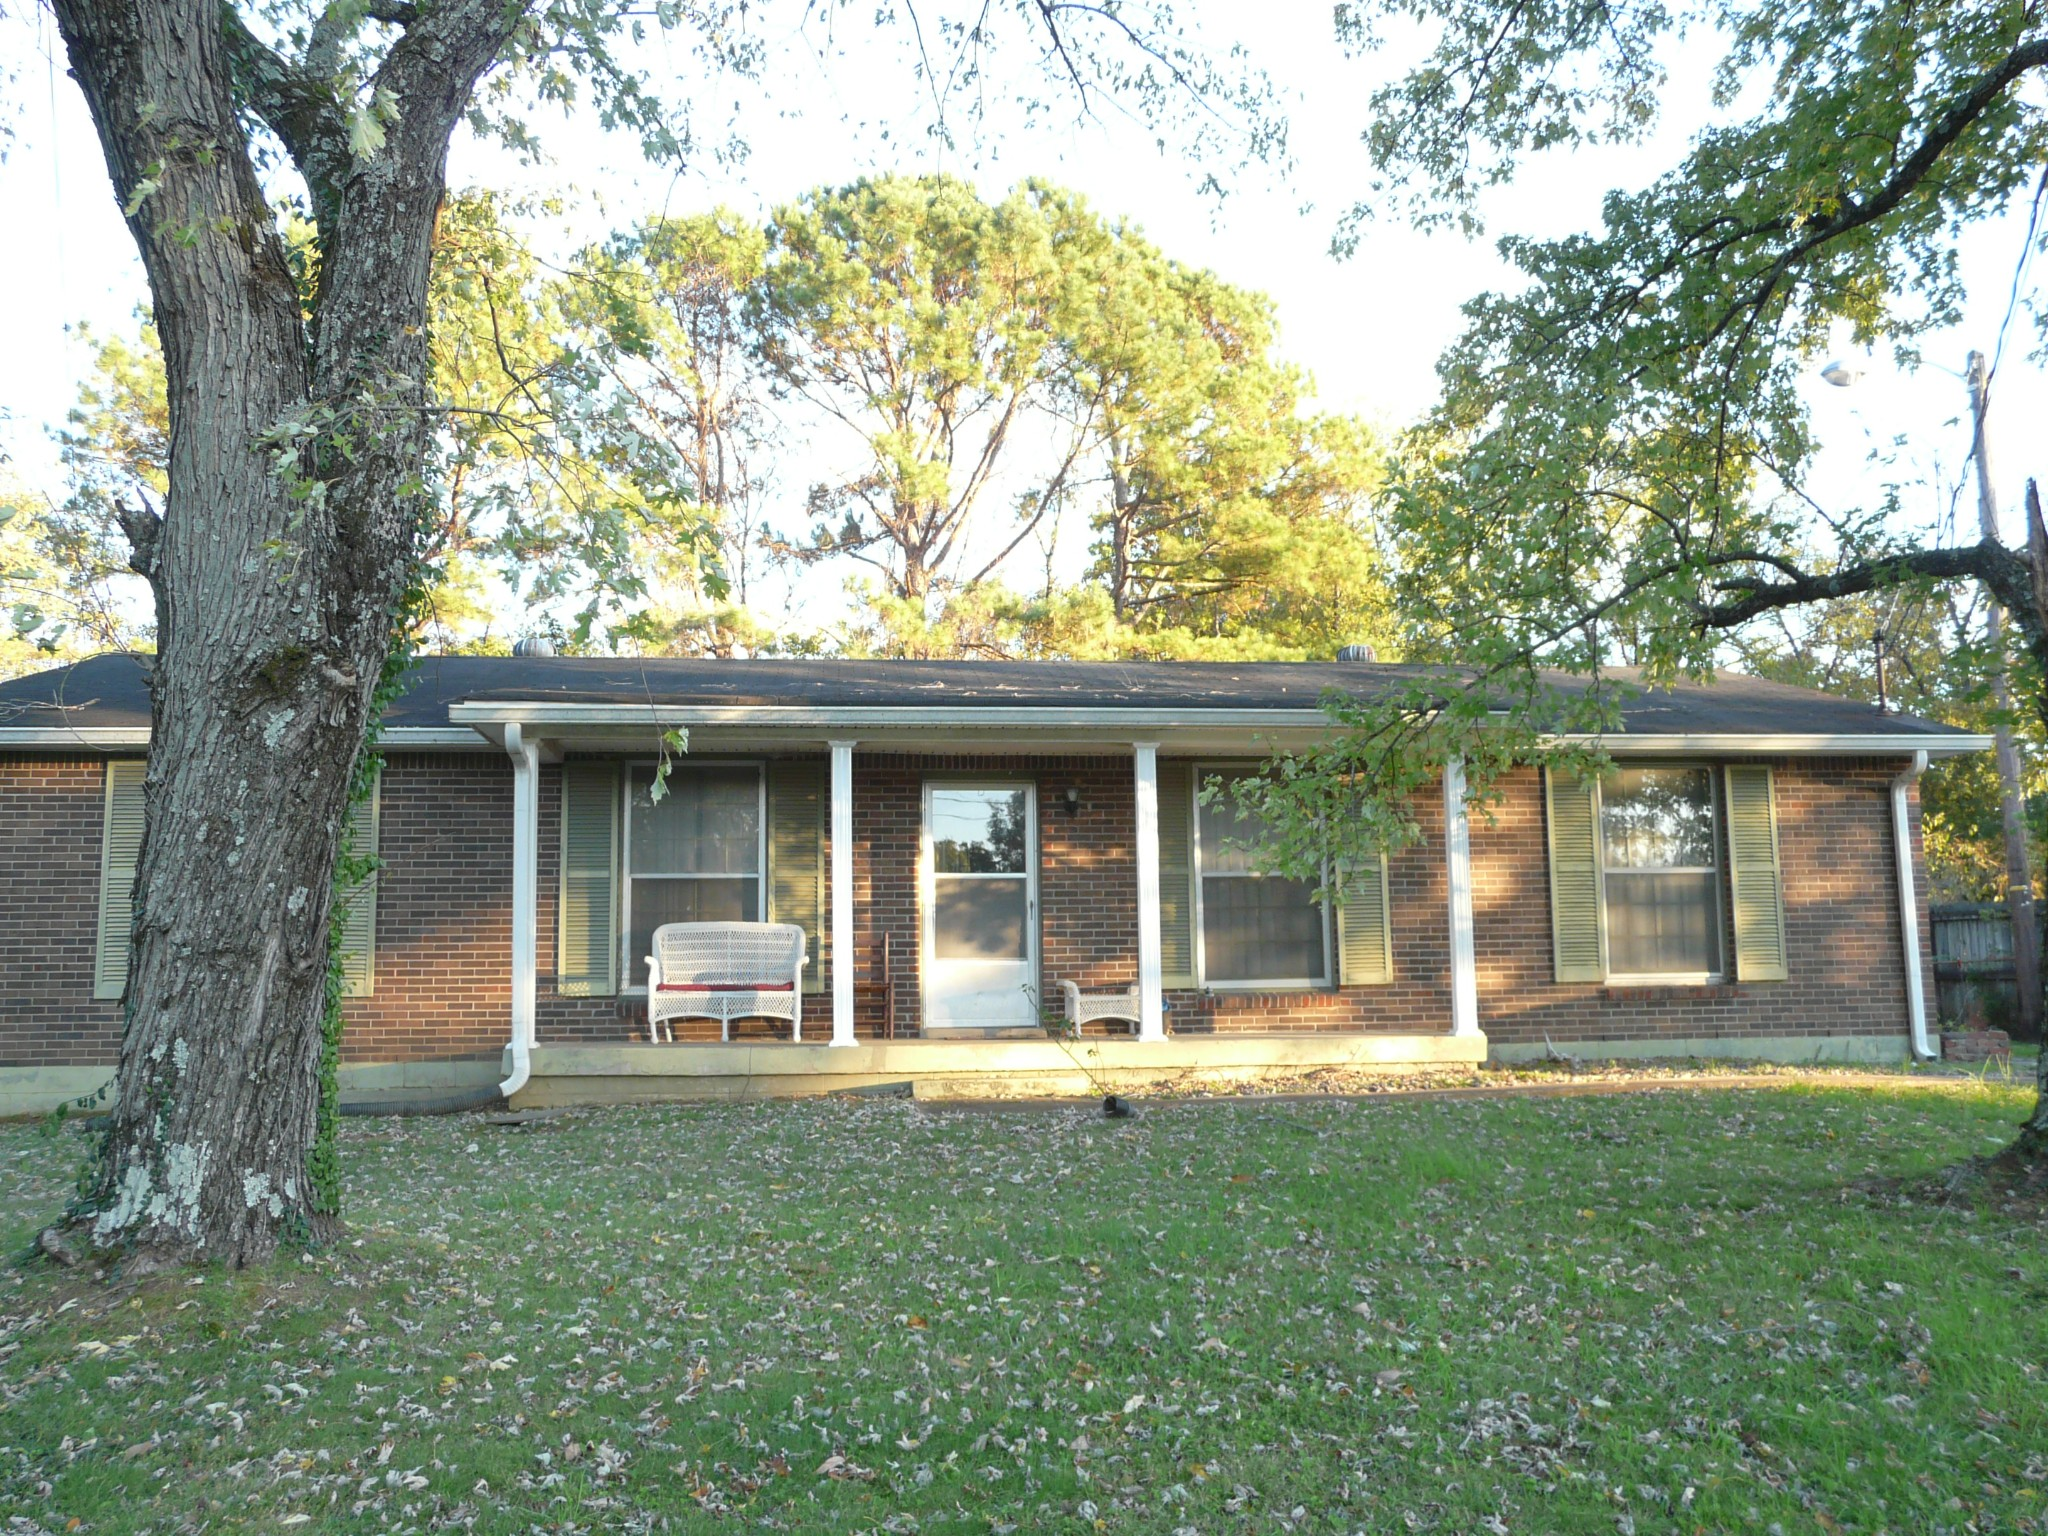 105 Rader Dr, Nashville-Antioch in Davidson County County, TN 37013 Home for Sale